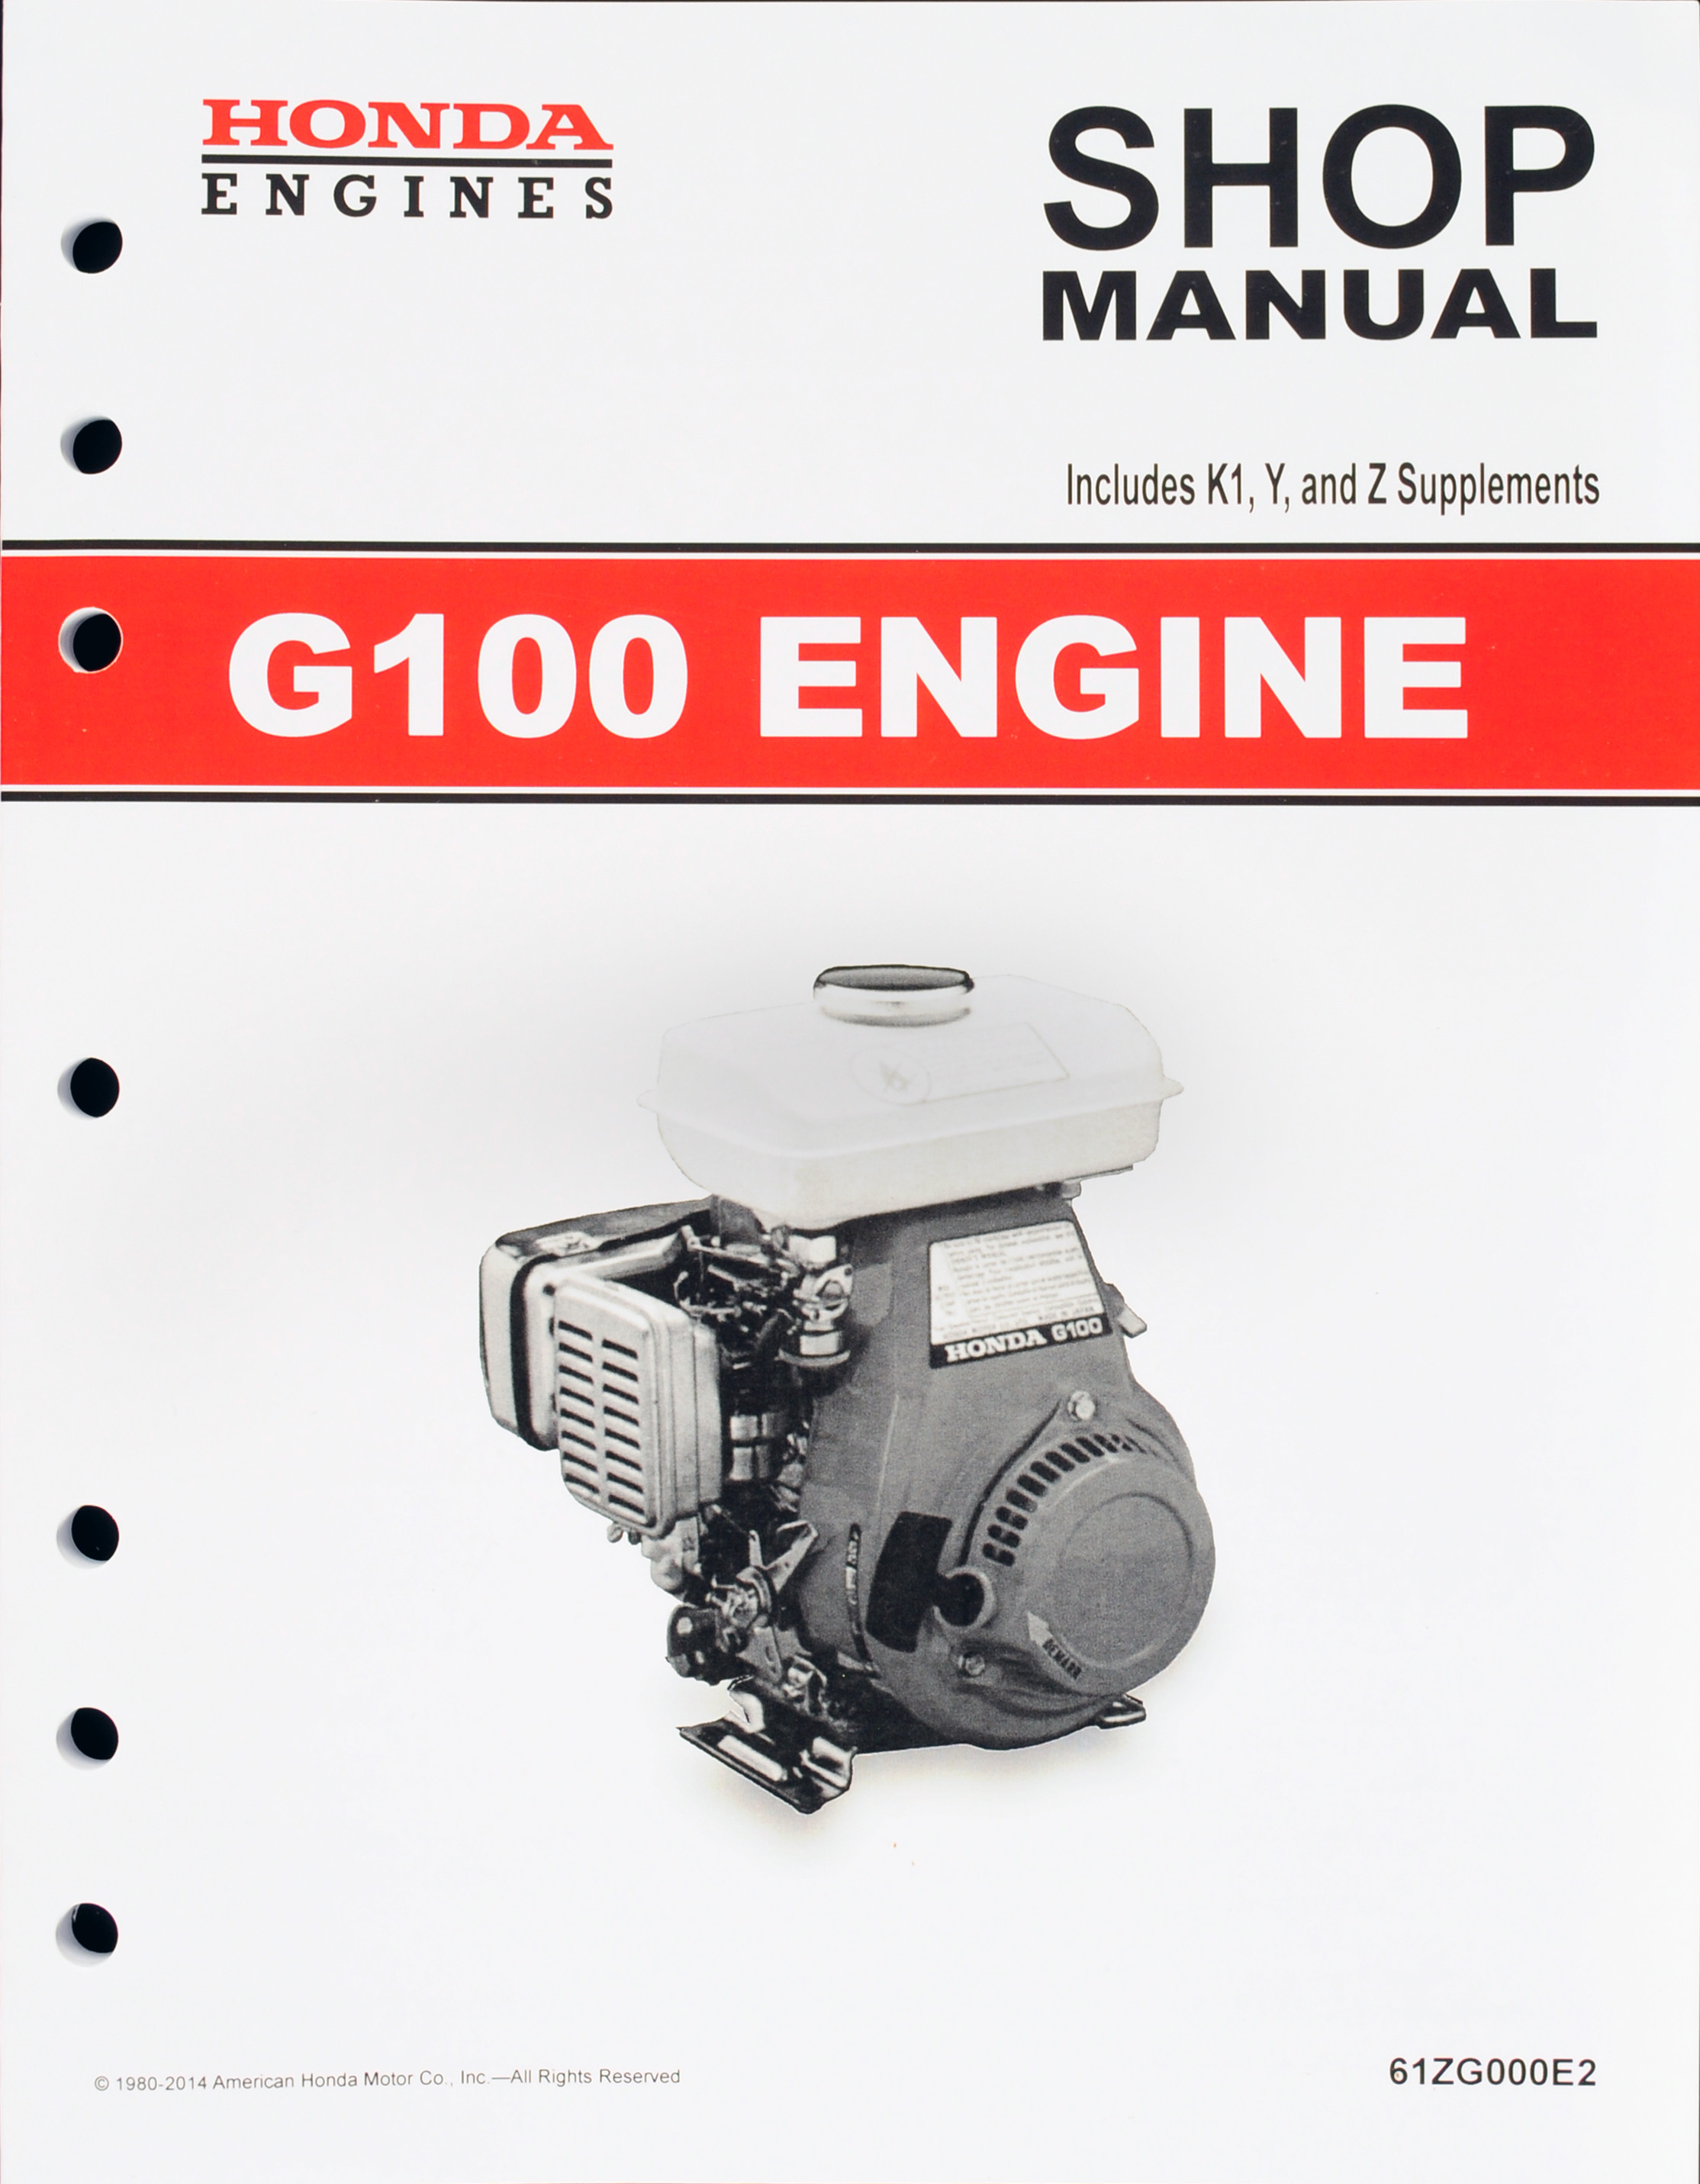 honda g100 engine service repair shop manual honda power products rh publications powerequipment honda com honda g100 owners manual Honda G400